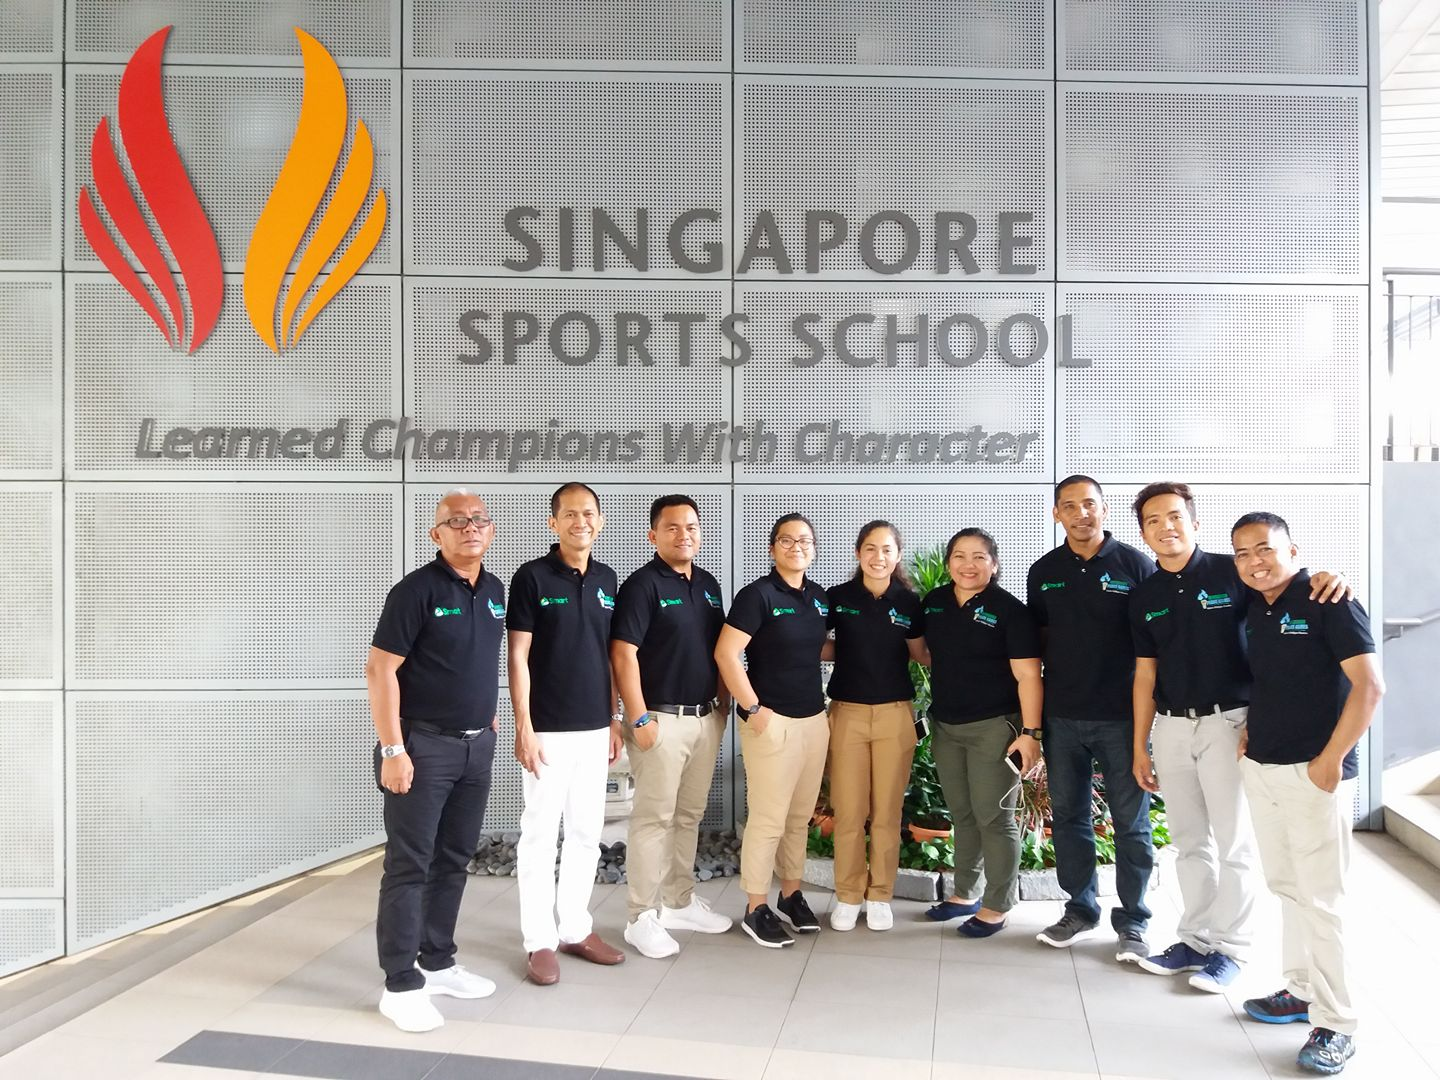 Sendad-Singapore-Sports-School-MPG-Mindanao-Peace-Games